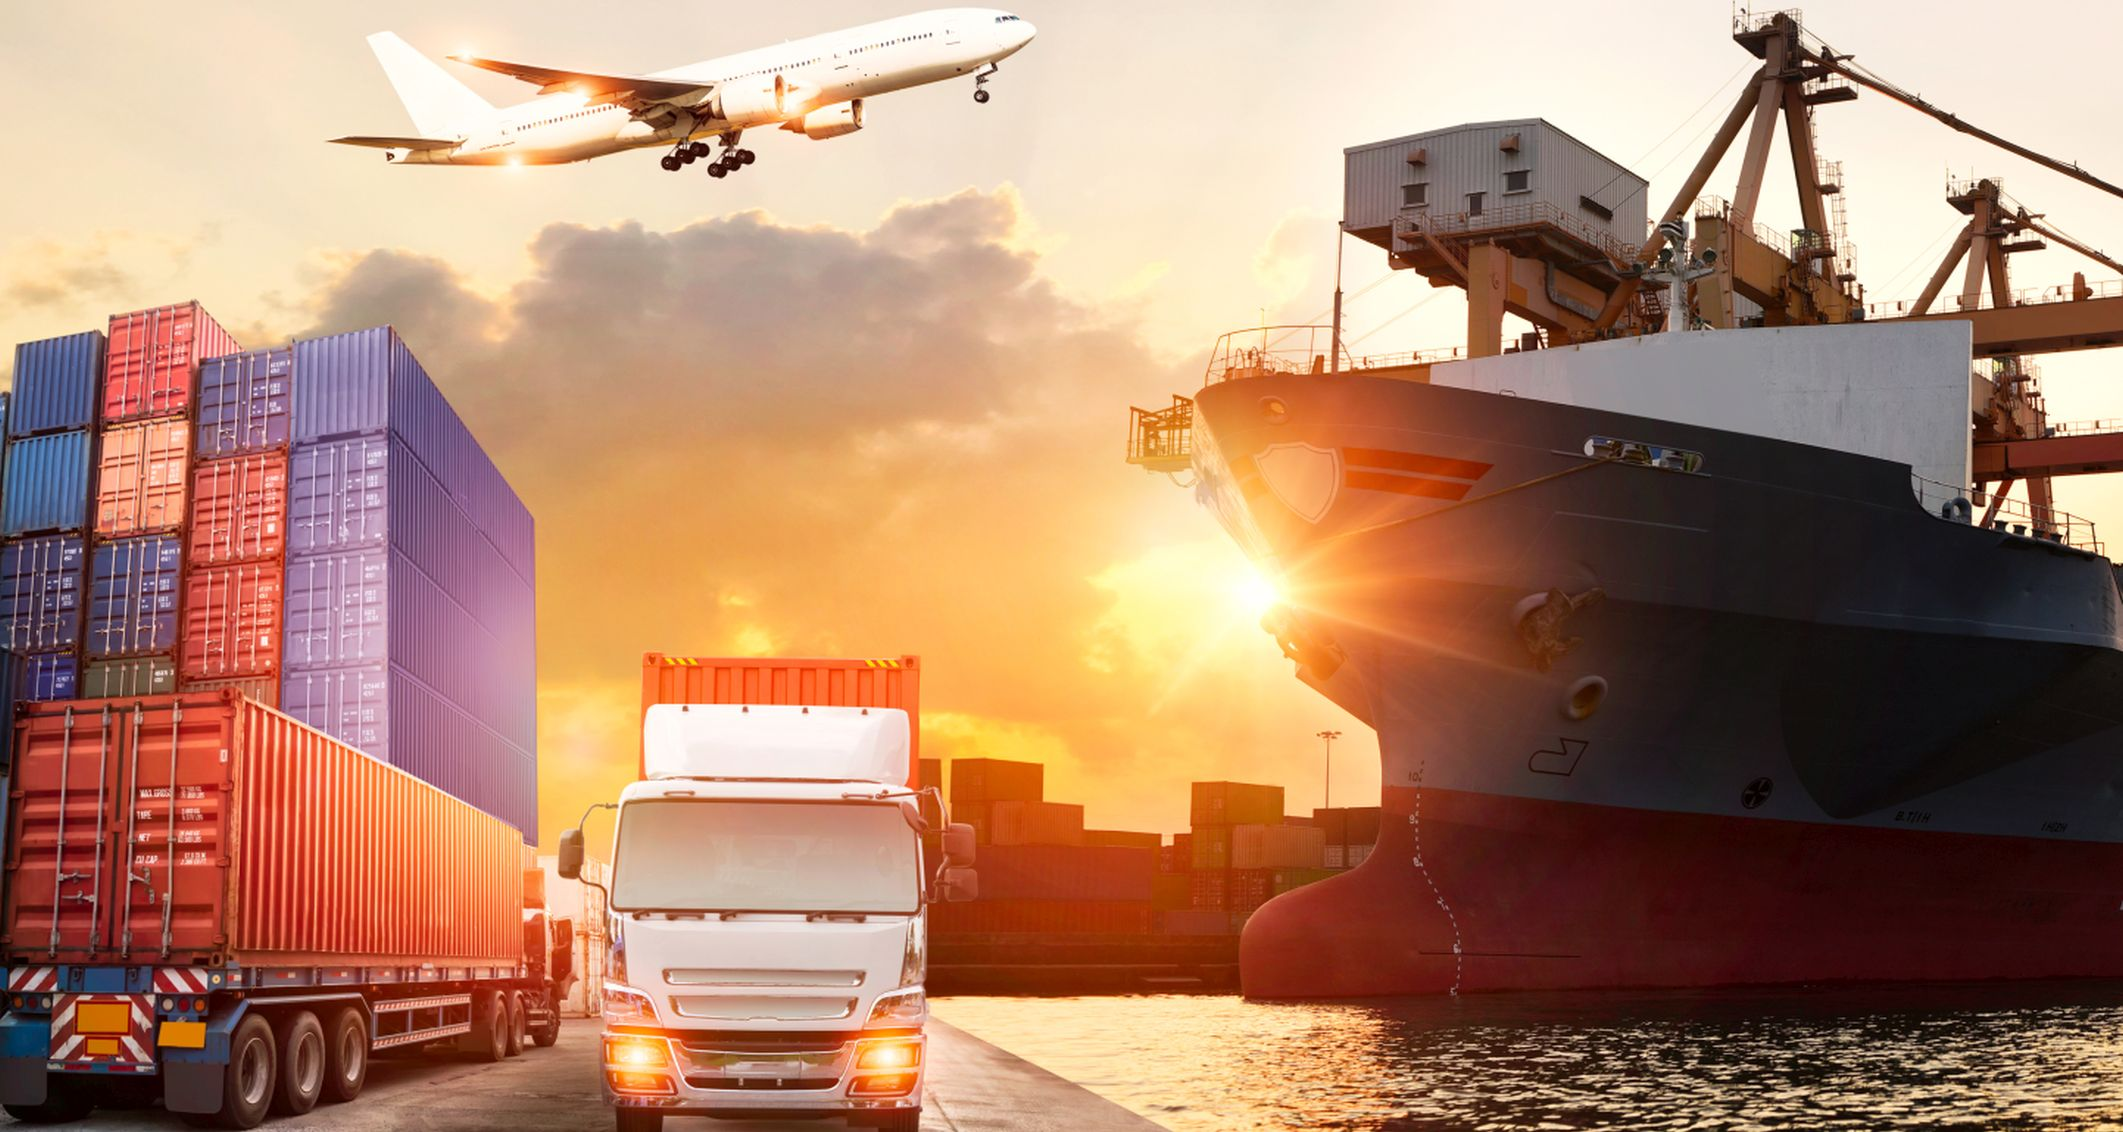 Logistics and transportation of Container Cargo ship and Cargo plane